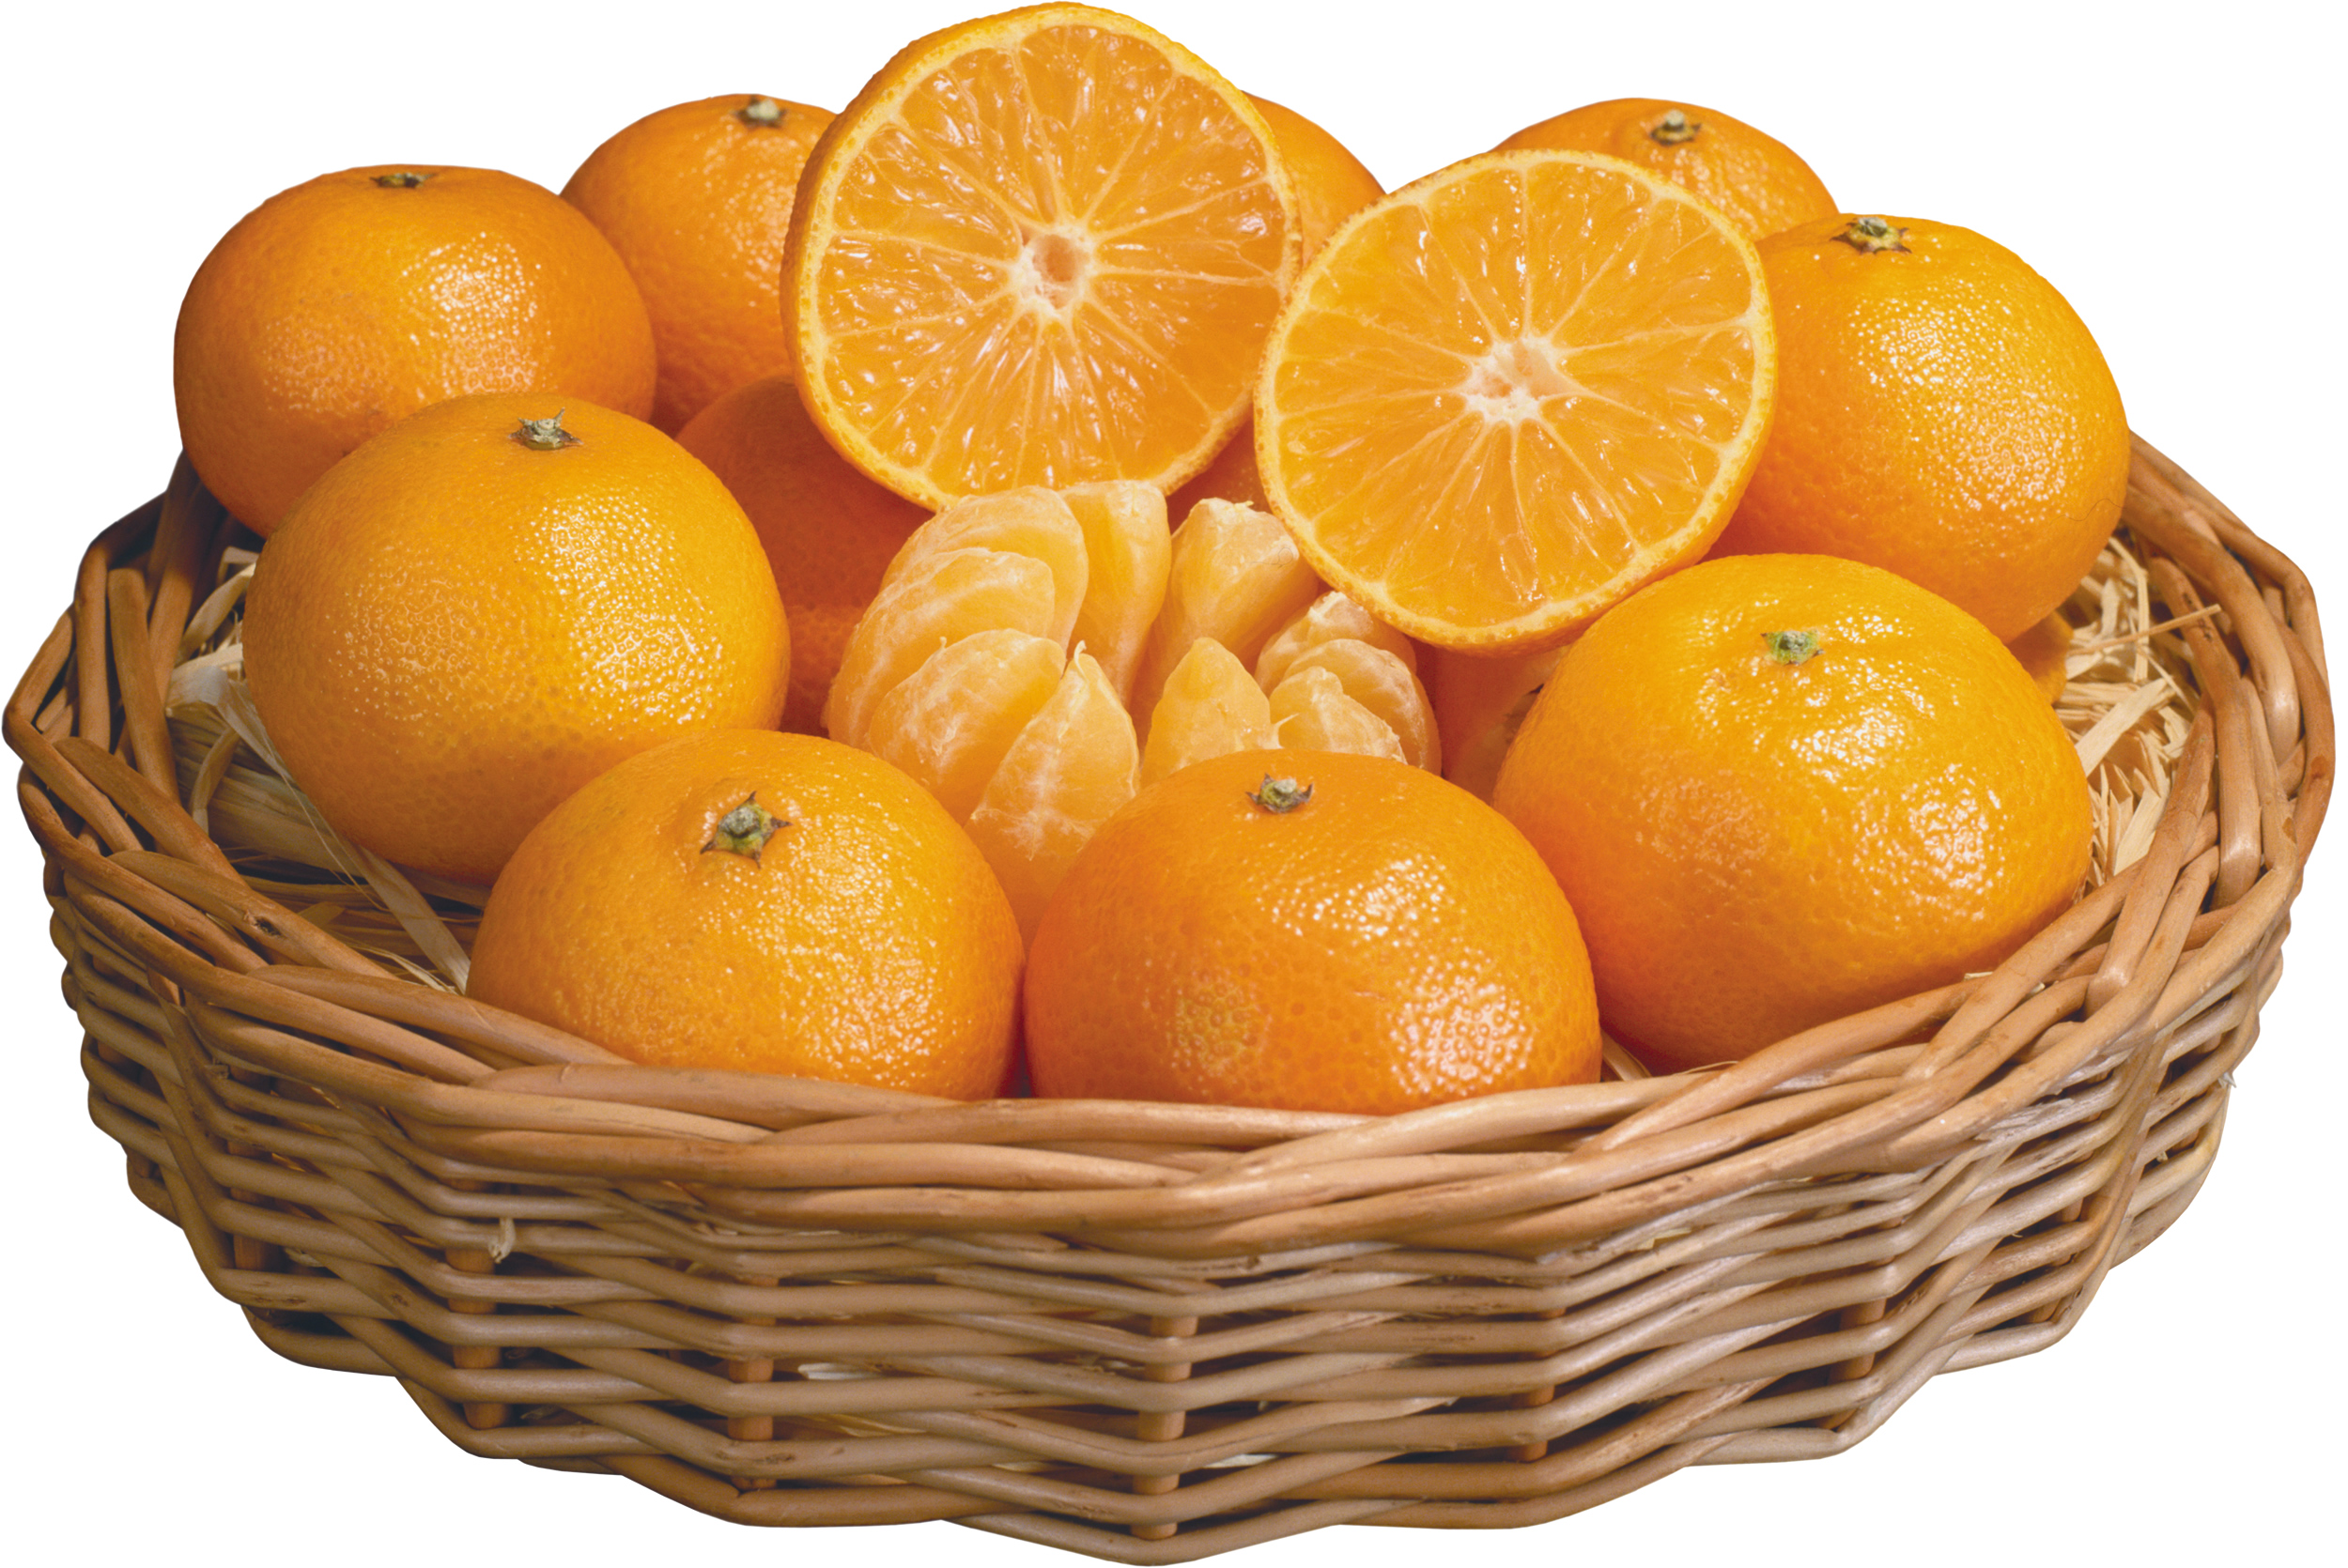 Oranges (3 Dozen) in Basket